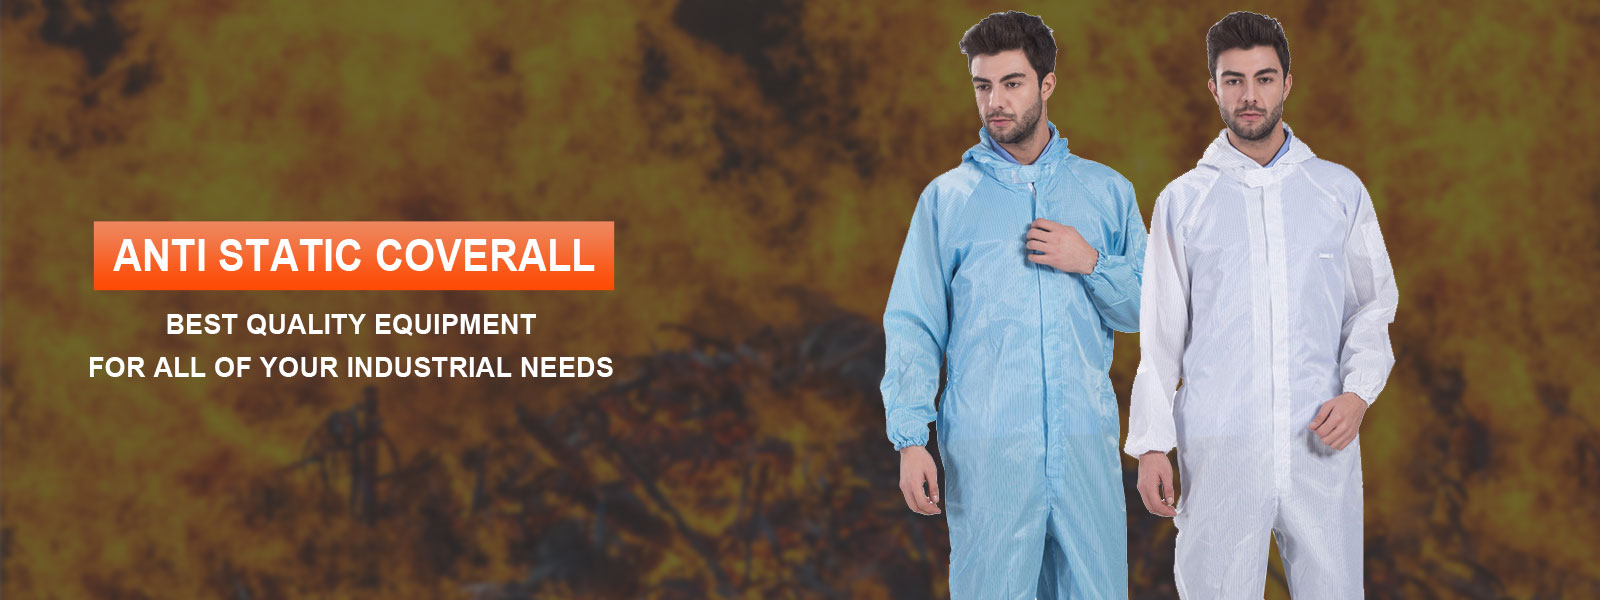 Anti Static Coverall Manufacturers in Jordan